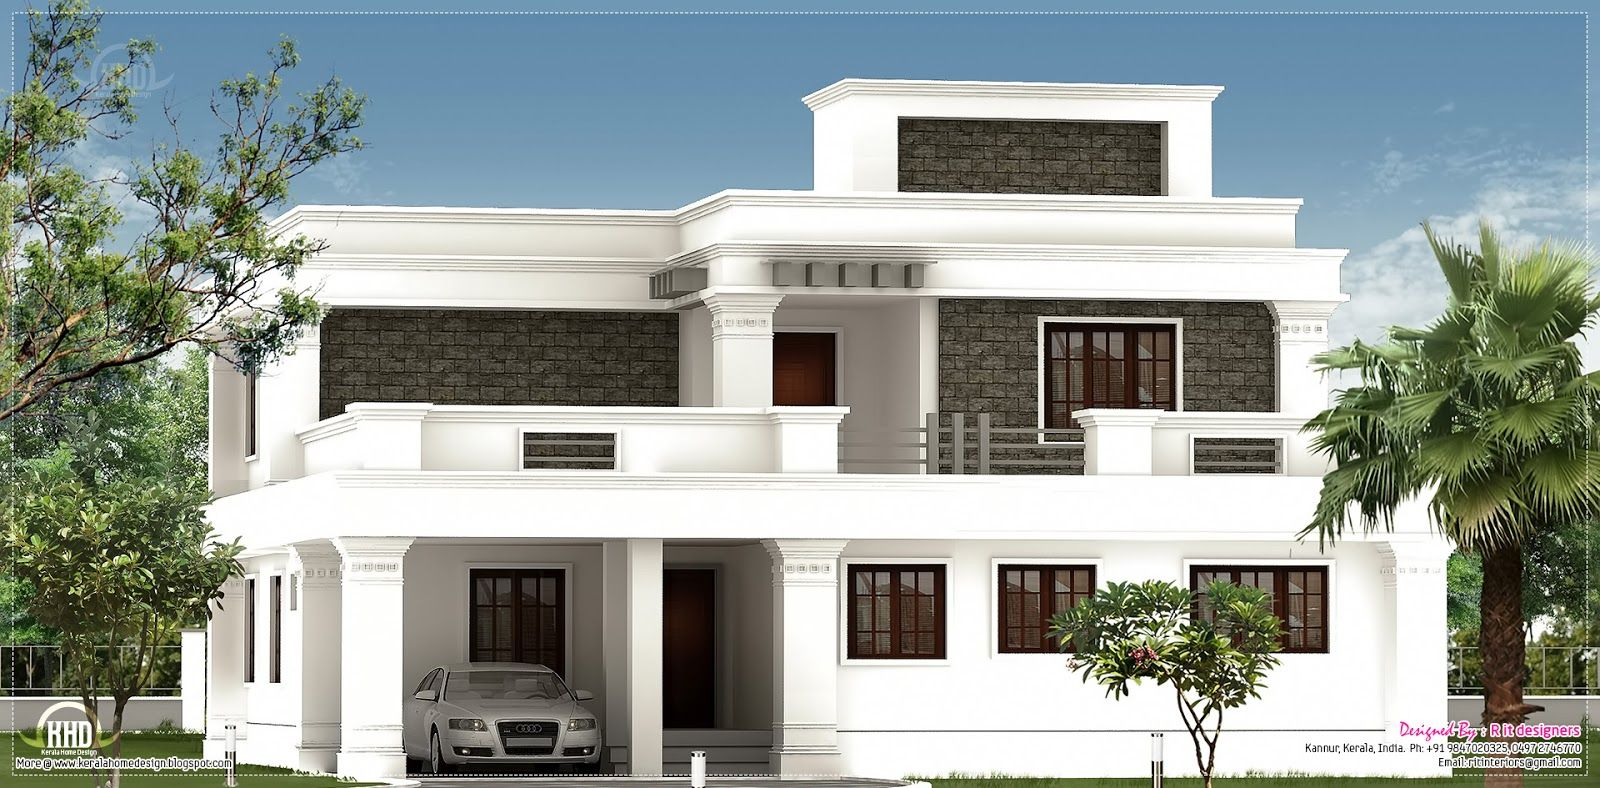 Flat roof homes designs flat roof villa exterior in 2400 Villa designs india